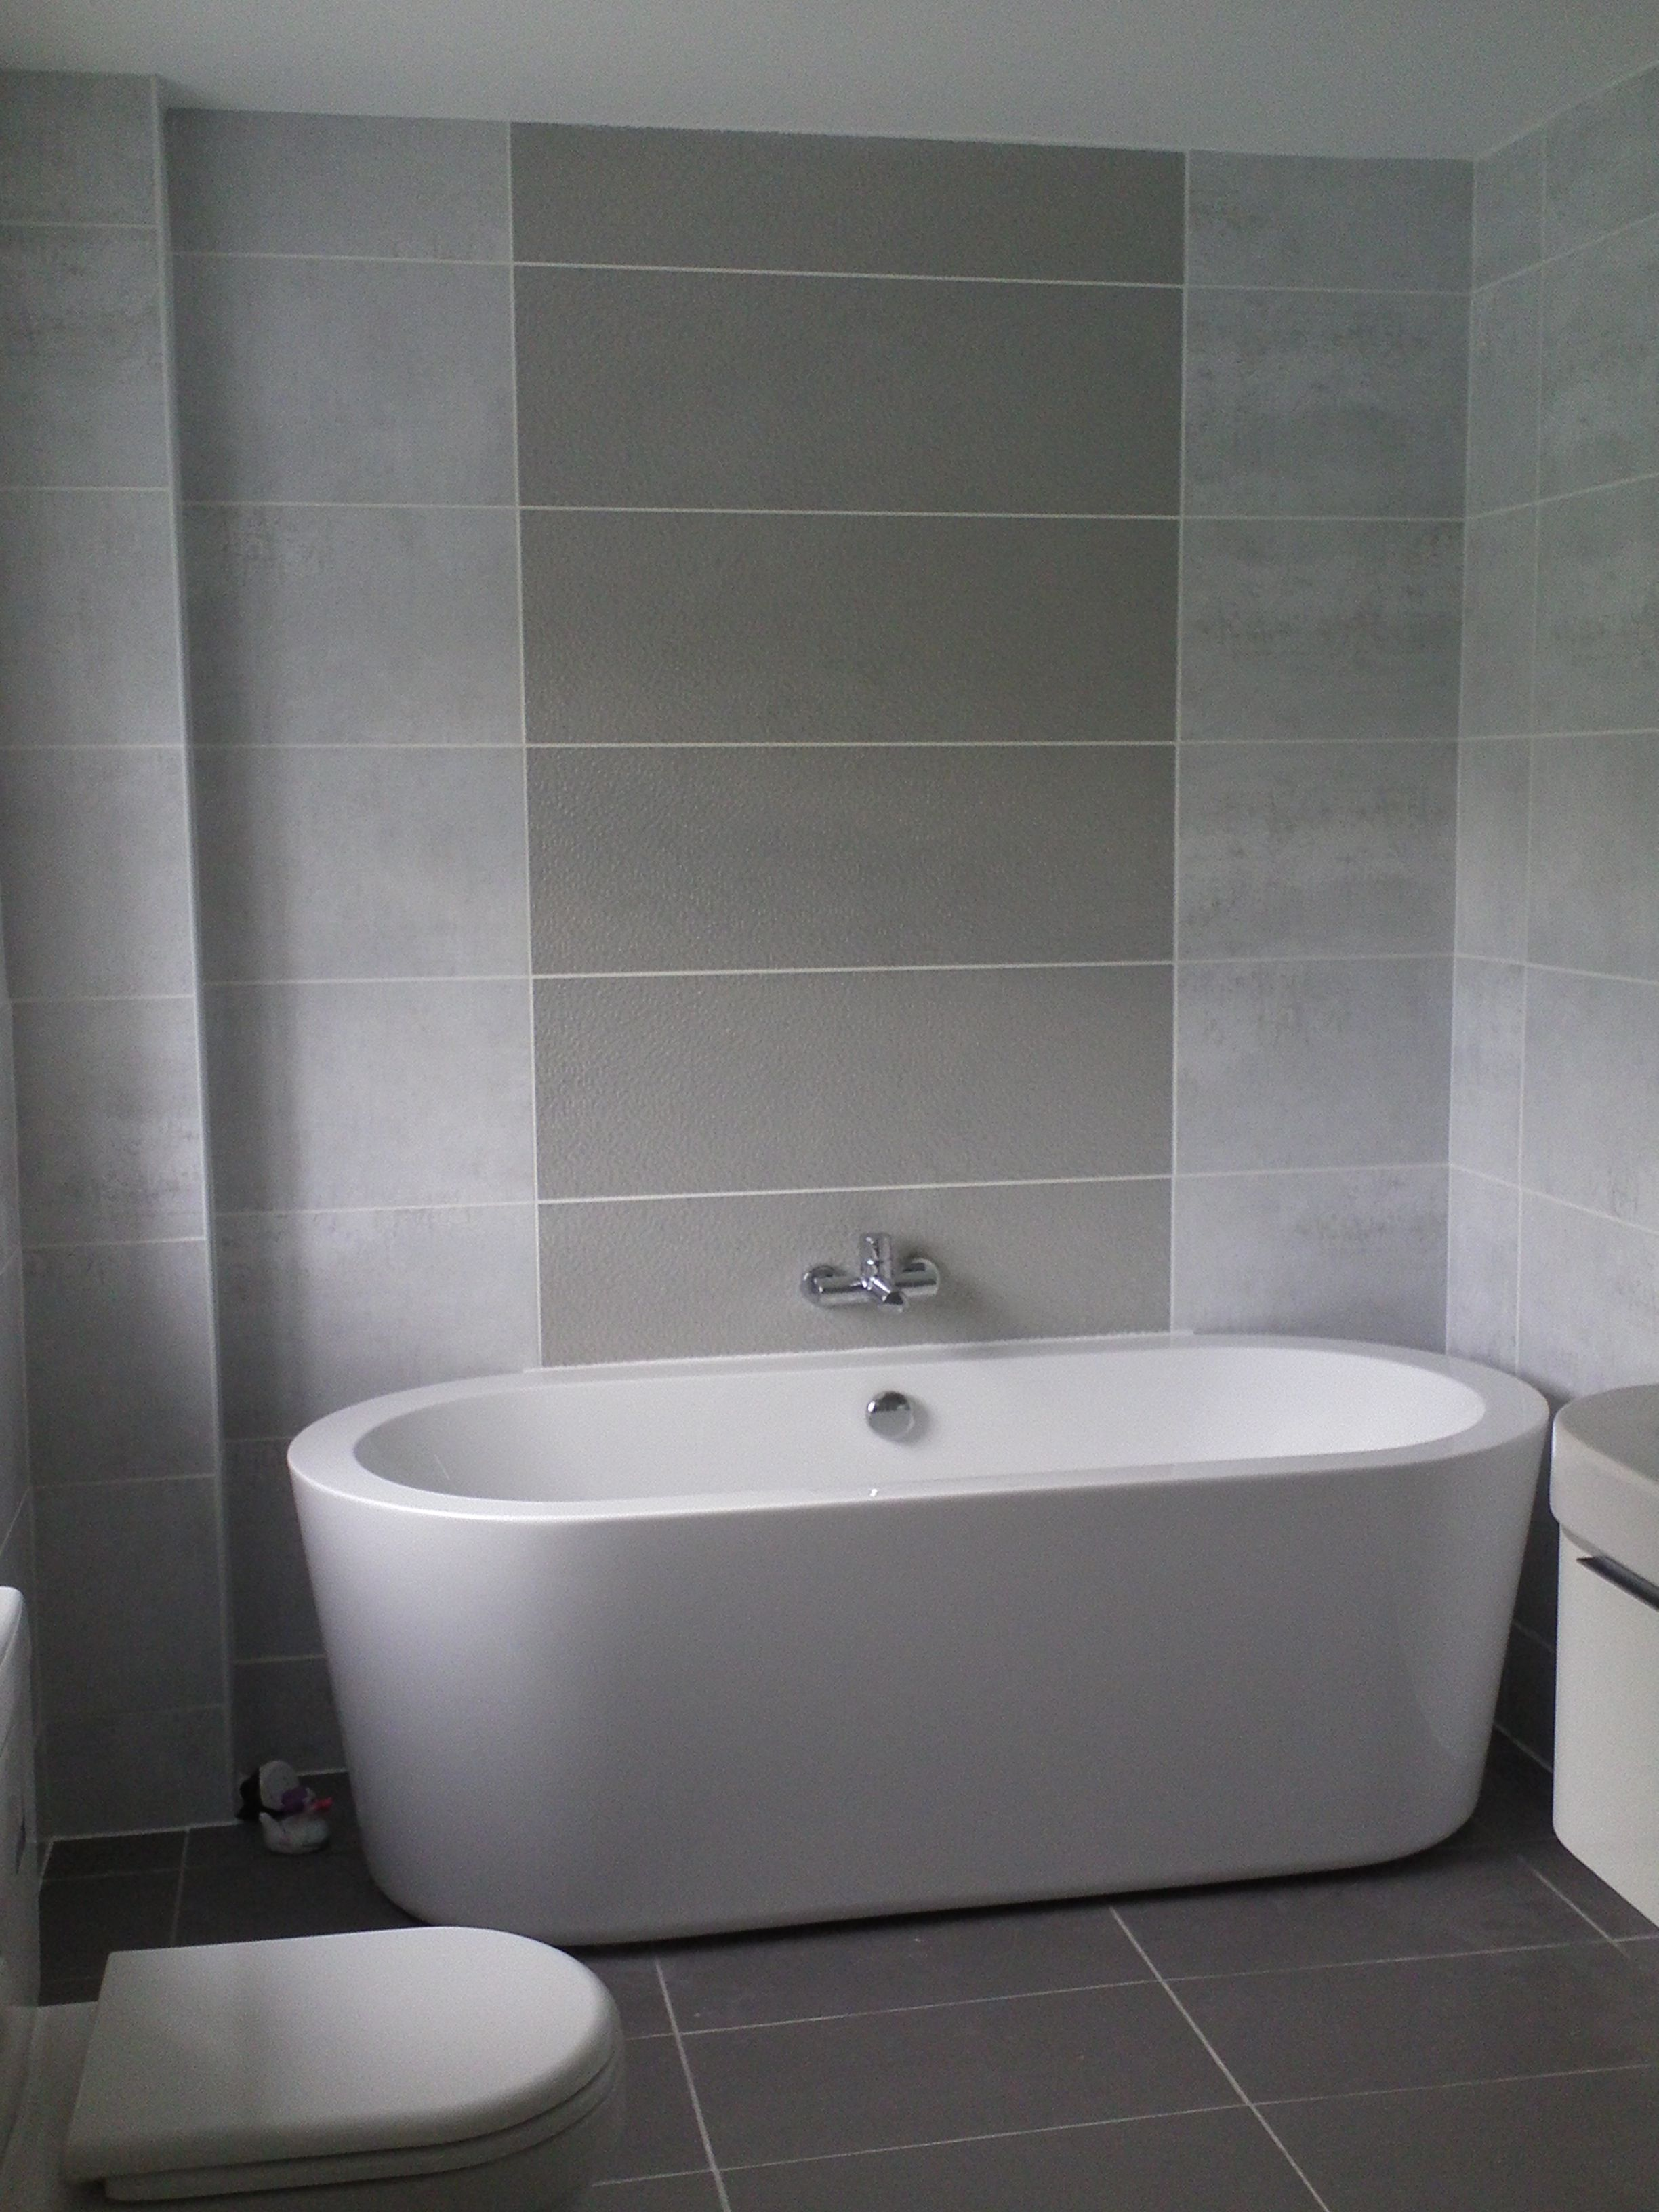 Tiling a small bathroom ideas - Inspiring Small Bathroom Color Ideas With Grey Wall Tiled As Well As Simple